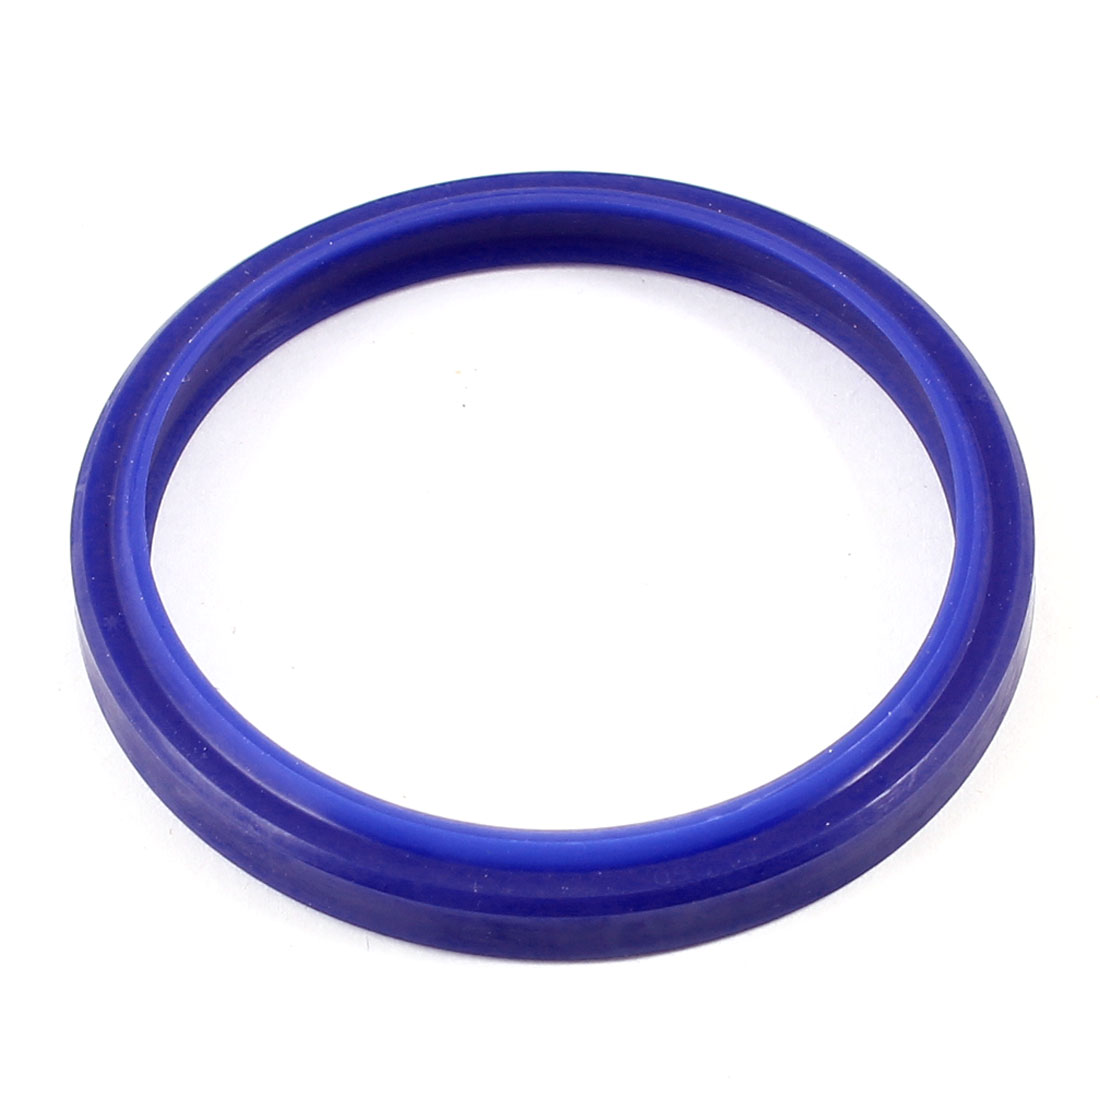 58mm x 50mm x 4mm Hydraulic Piston Rod Oilseal Oil Rubber Seal Blue